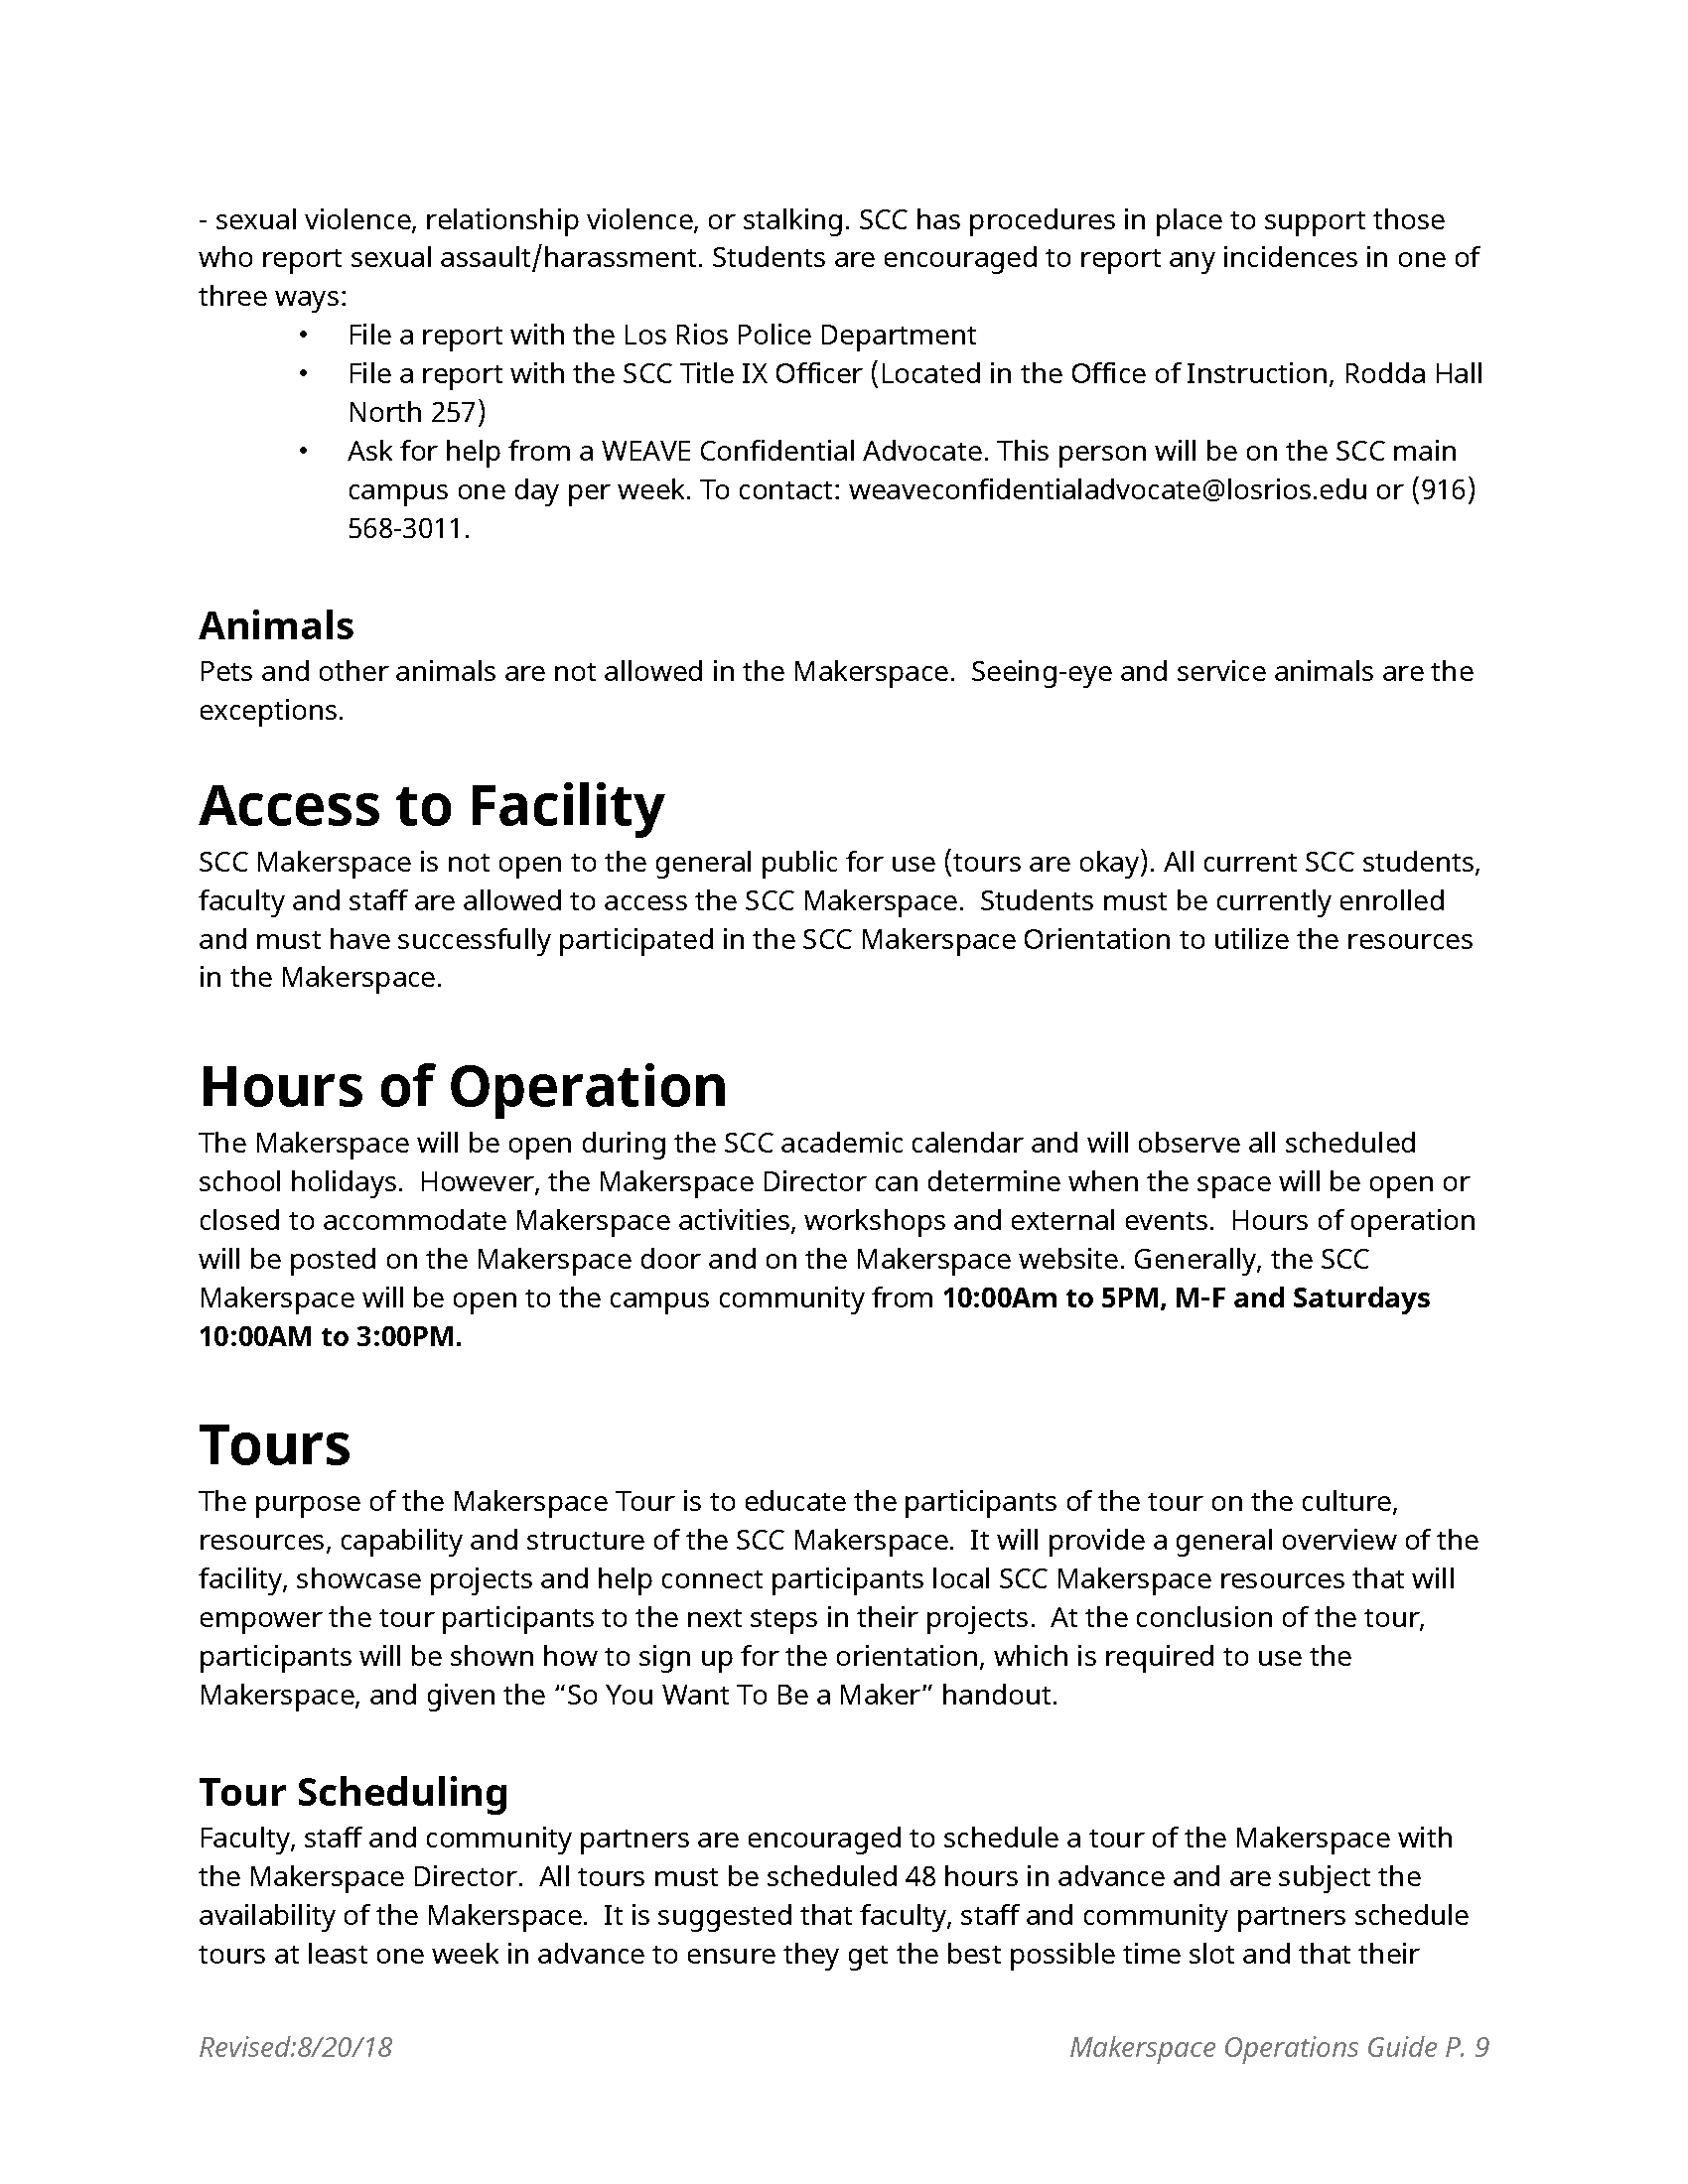 ms_ops_manual_8-20_Page_09.png